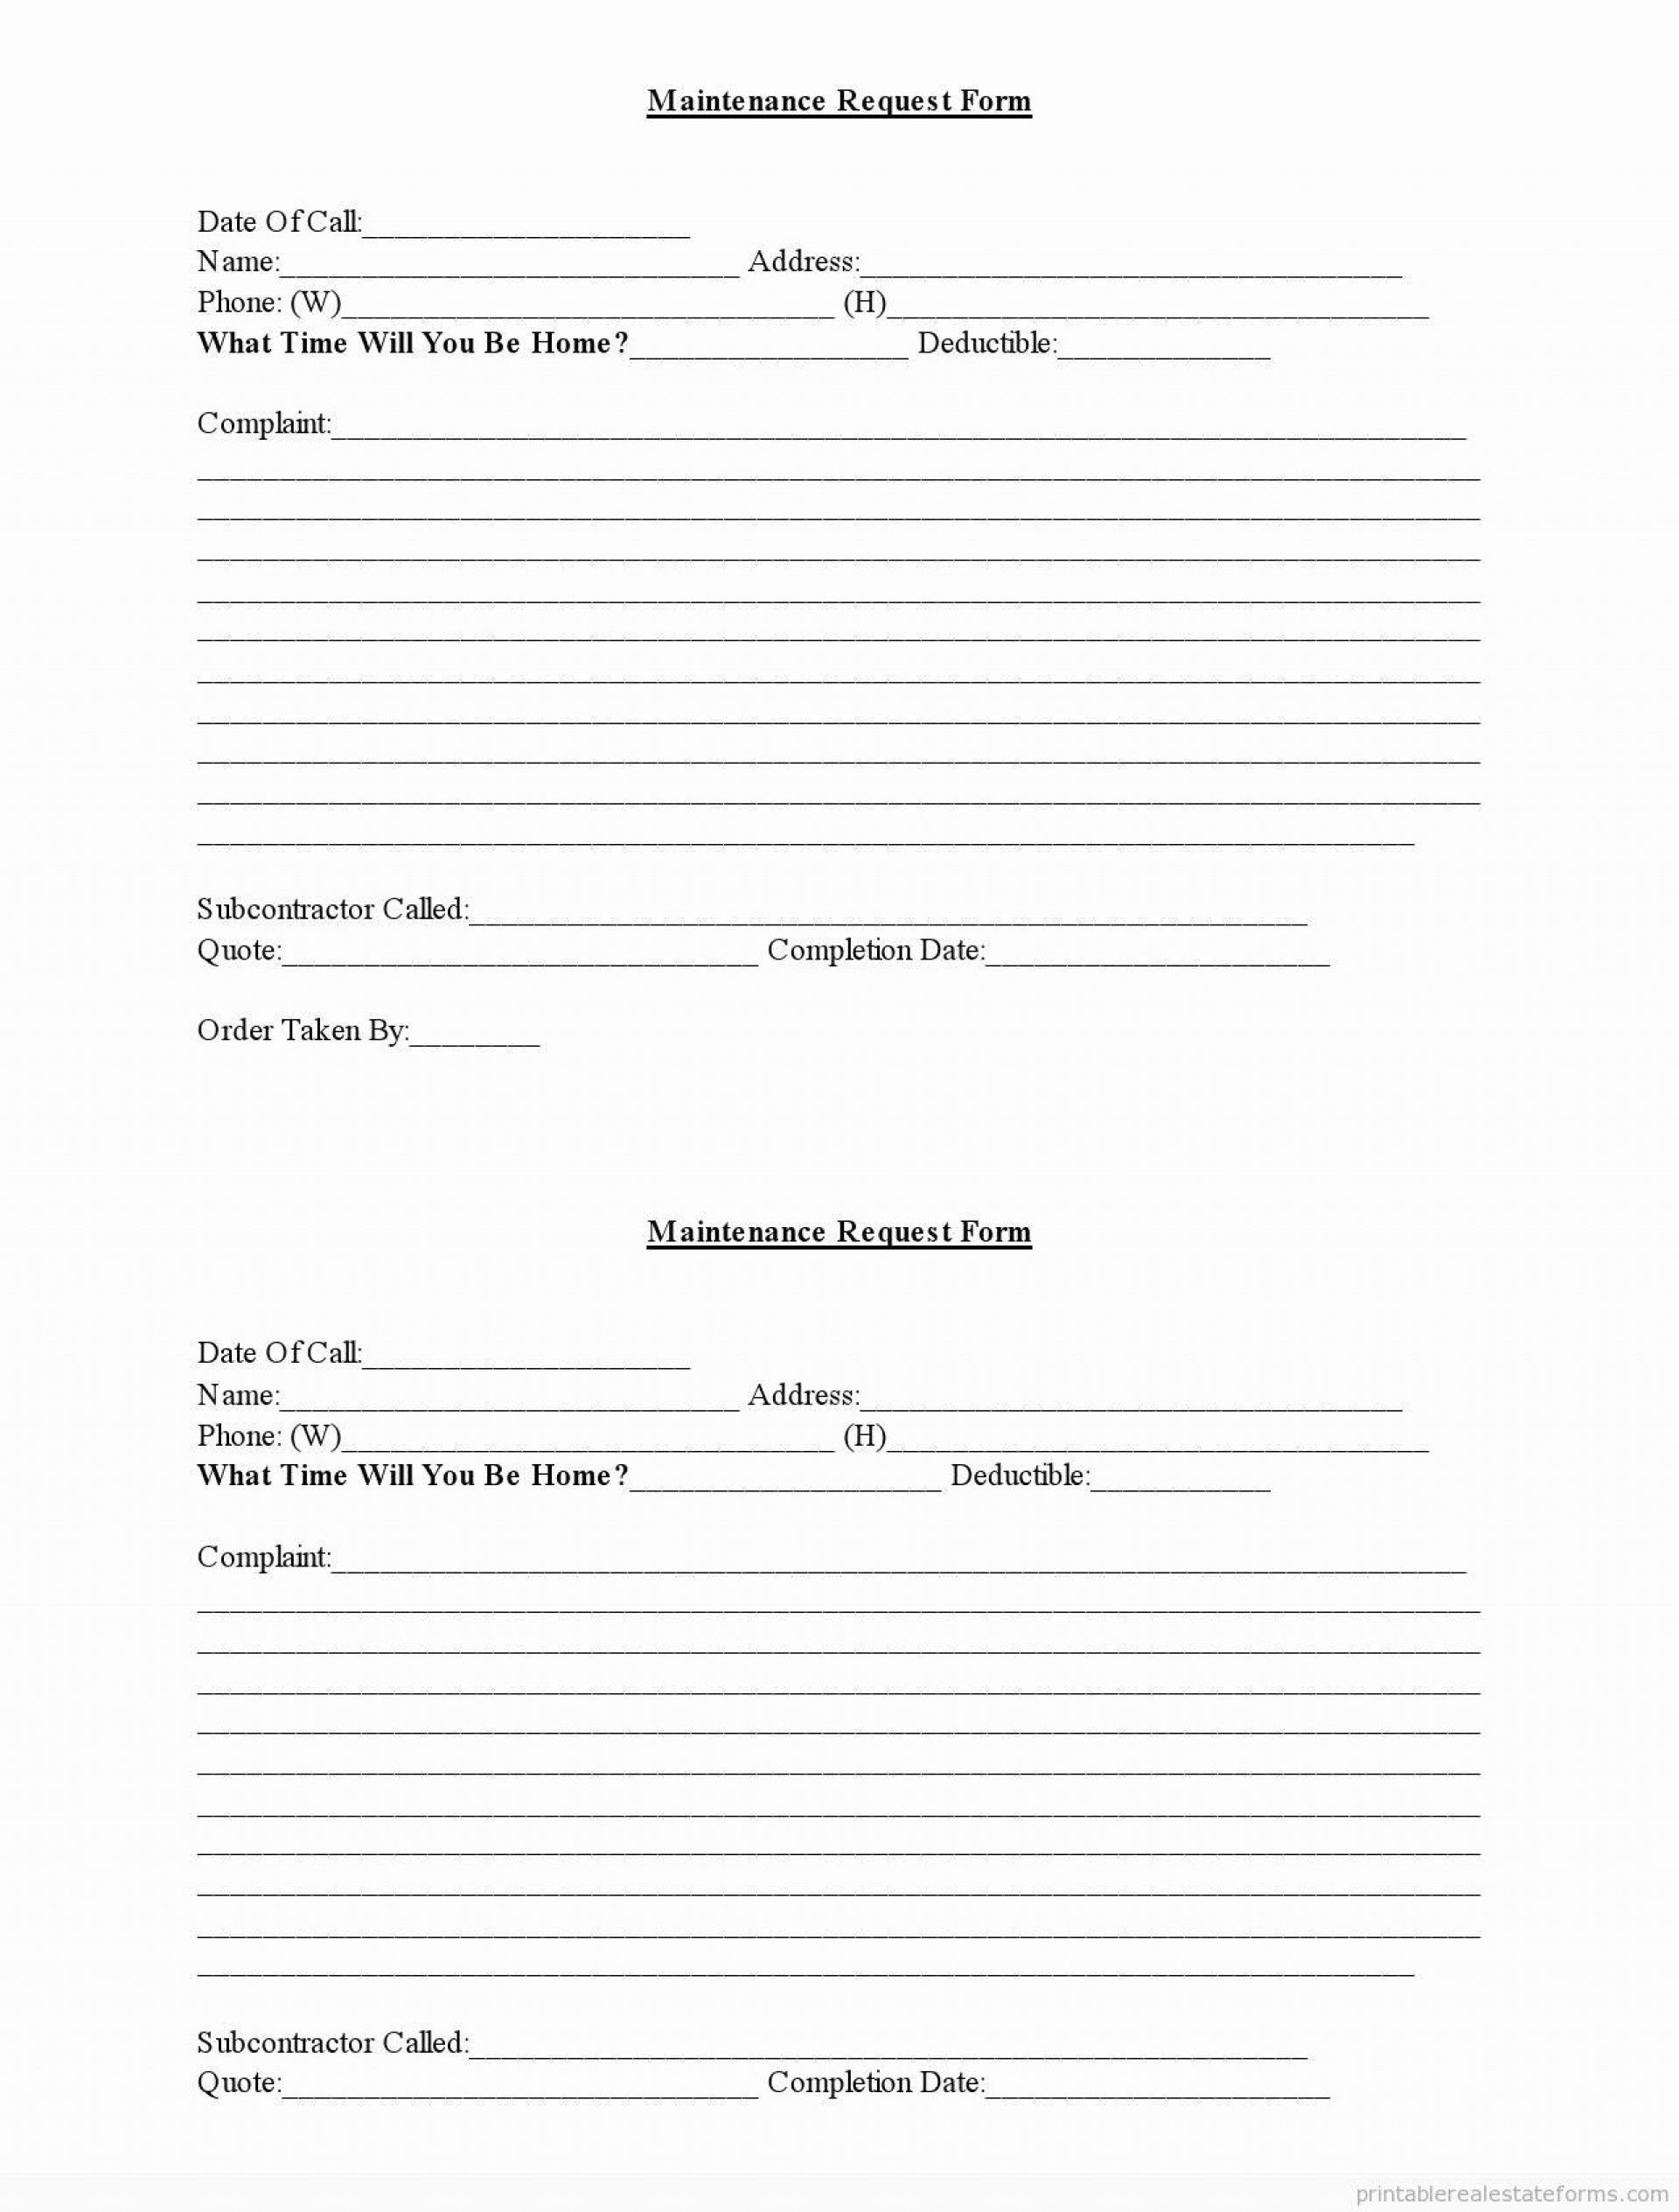 Tenant Maintenance Request Form Template Best Of 8 Apartment Maintenance Request Form Template Eerzr Templates Essay About Life Writing Templates